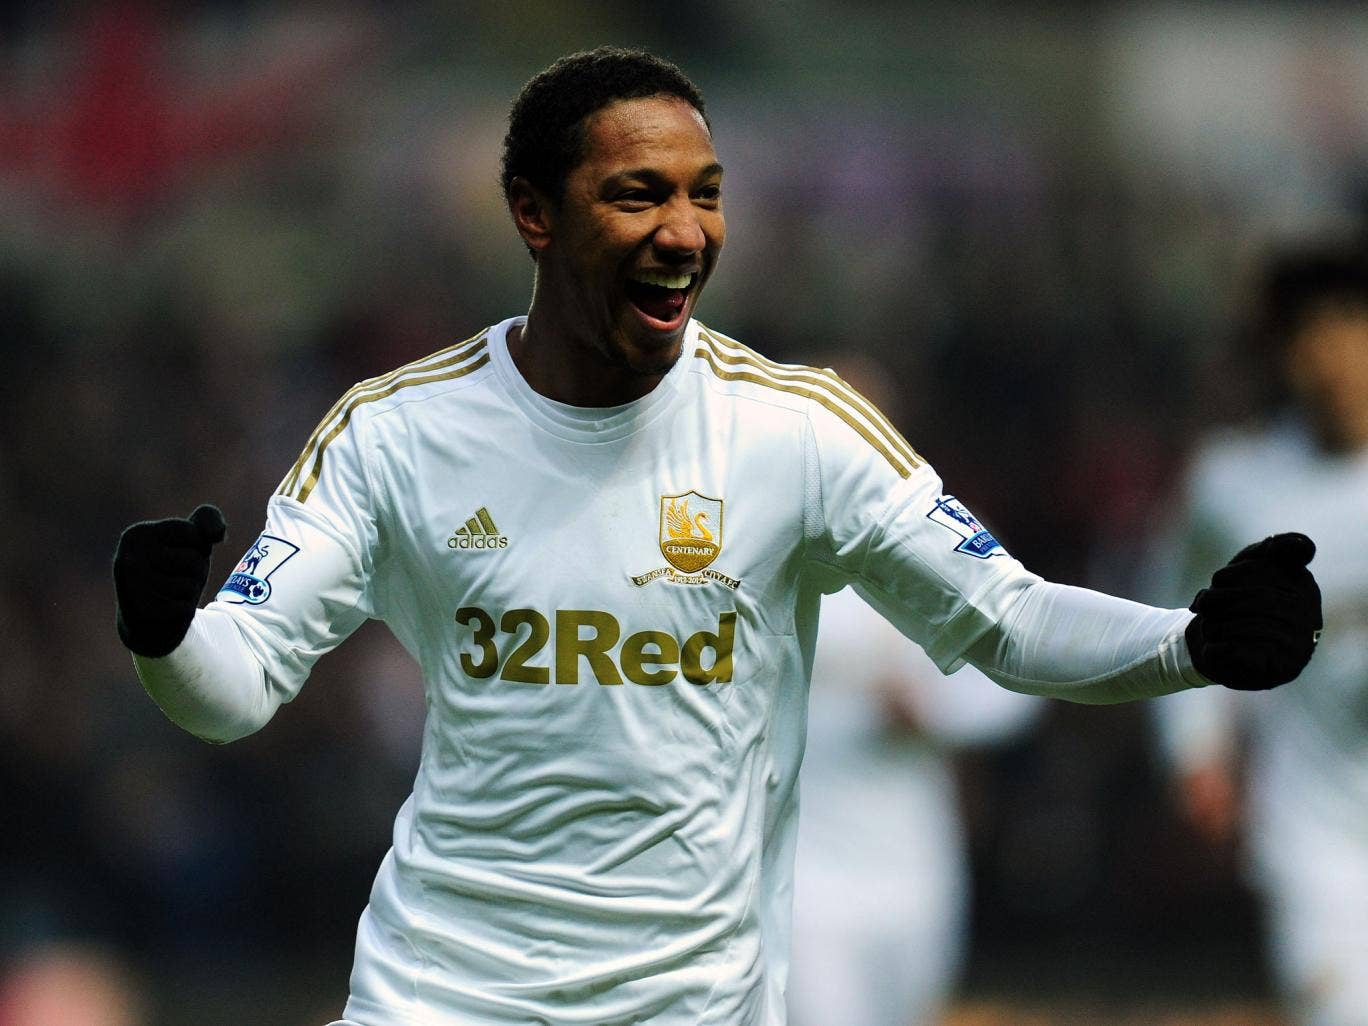 Swansea player Jonathan de Guzman celebrates after his free kick went in